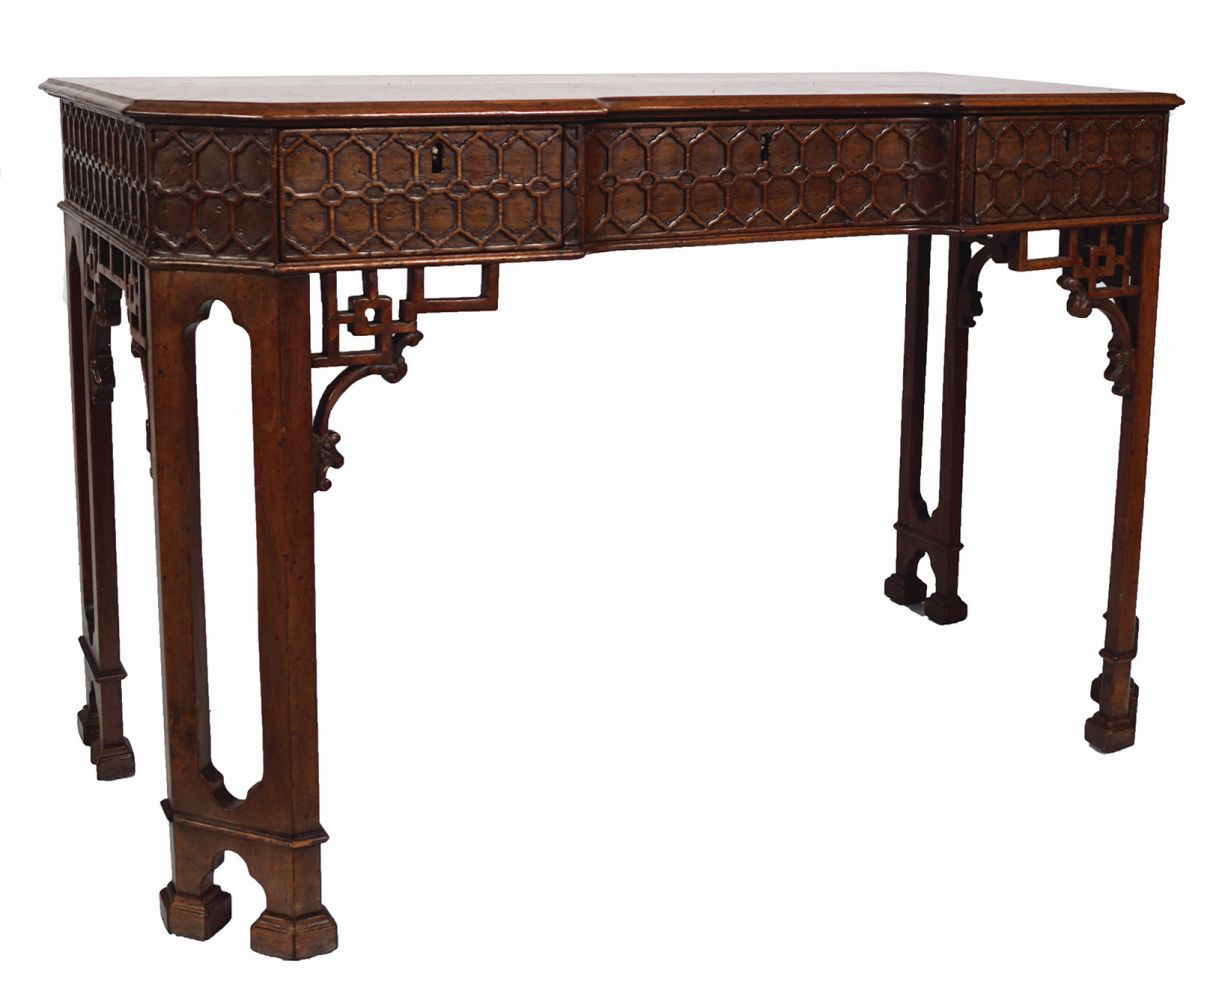 18TH-CENTURY PERIOD CHINESE CHIPPENDALE TABLE - Image 6 of 7